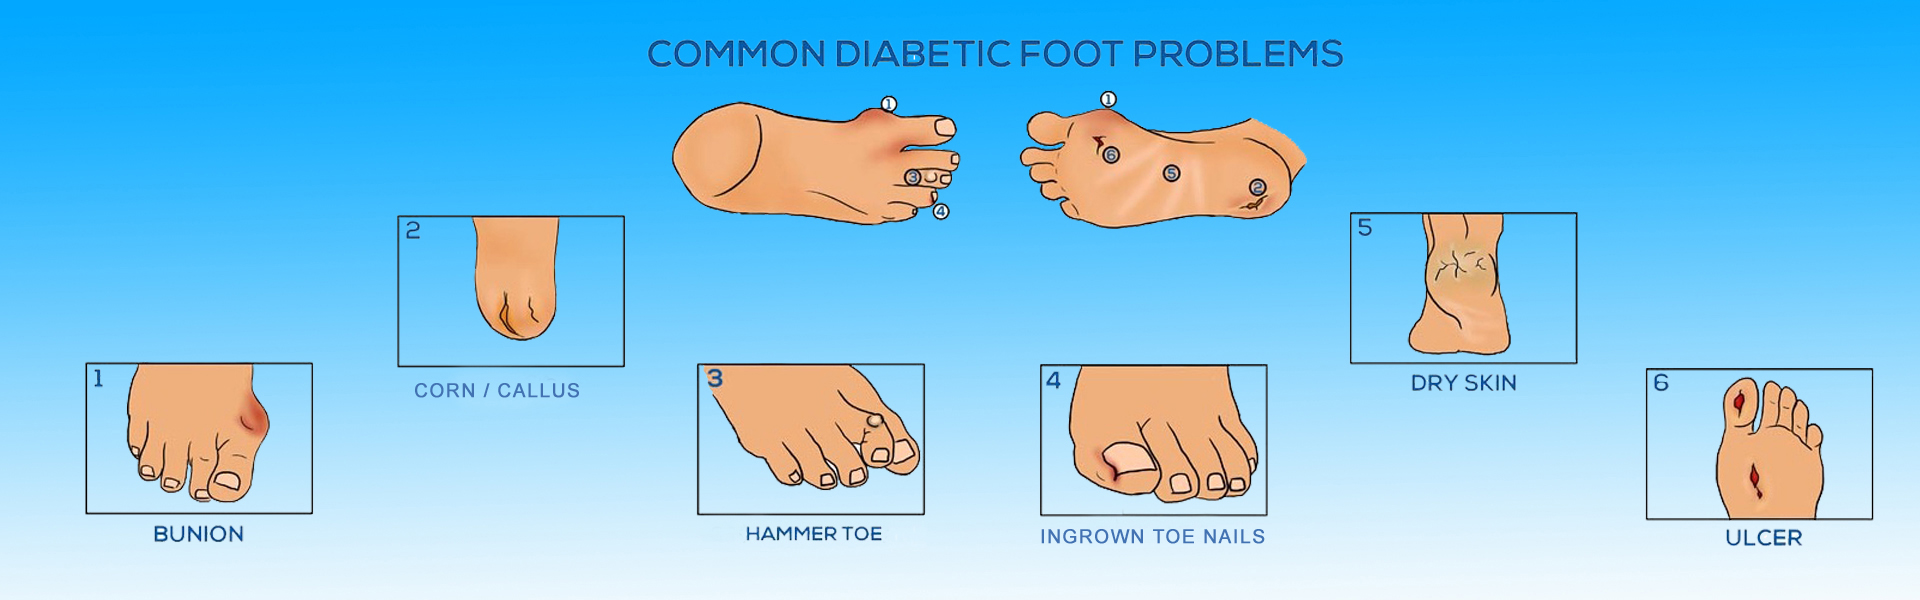 Diabetic Foot Surgeon in Bhopal, India